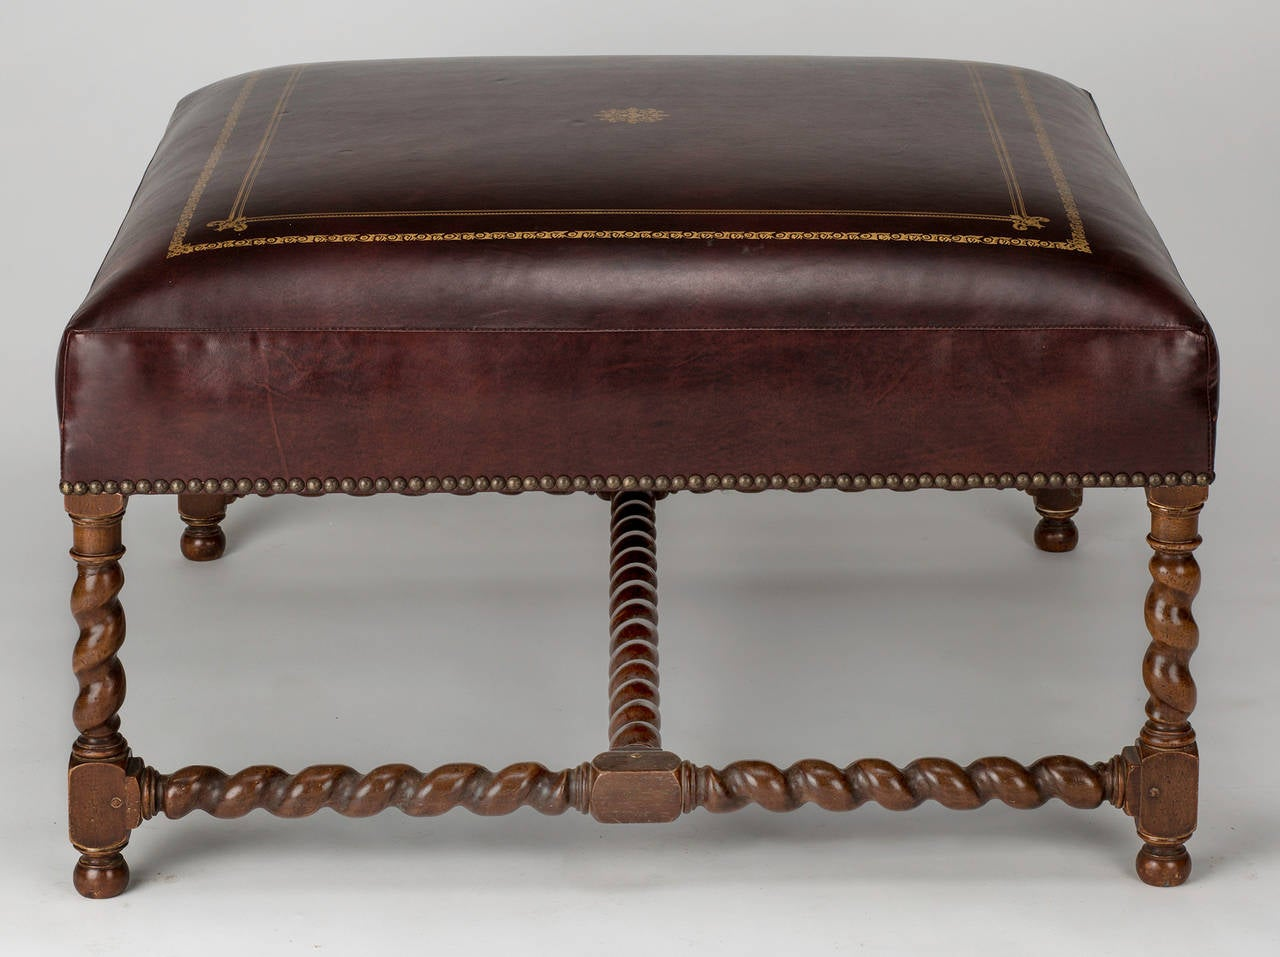 Large Square Leather Ottoman Or Bench At 1stdibs